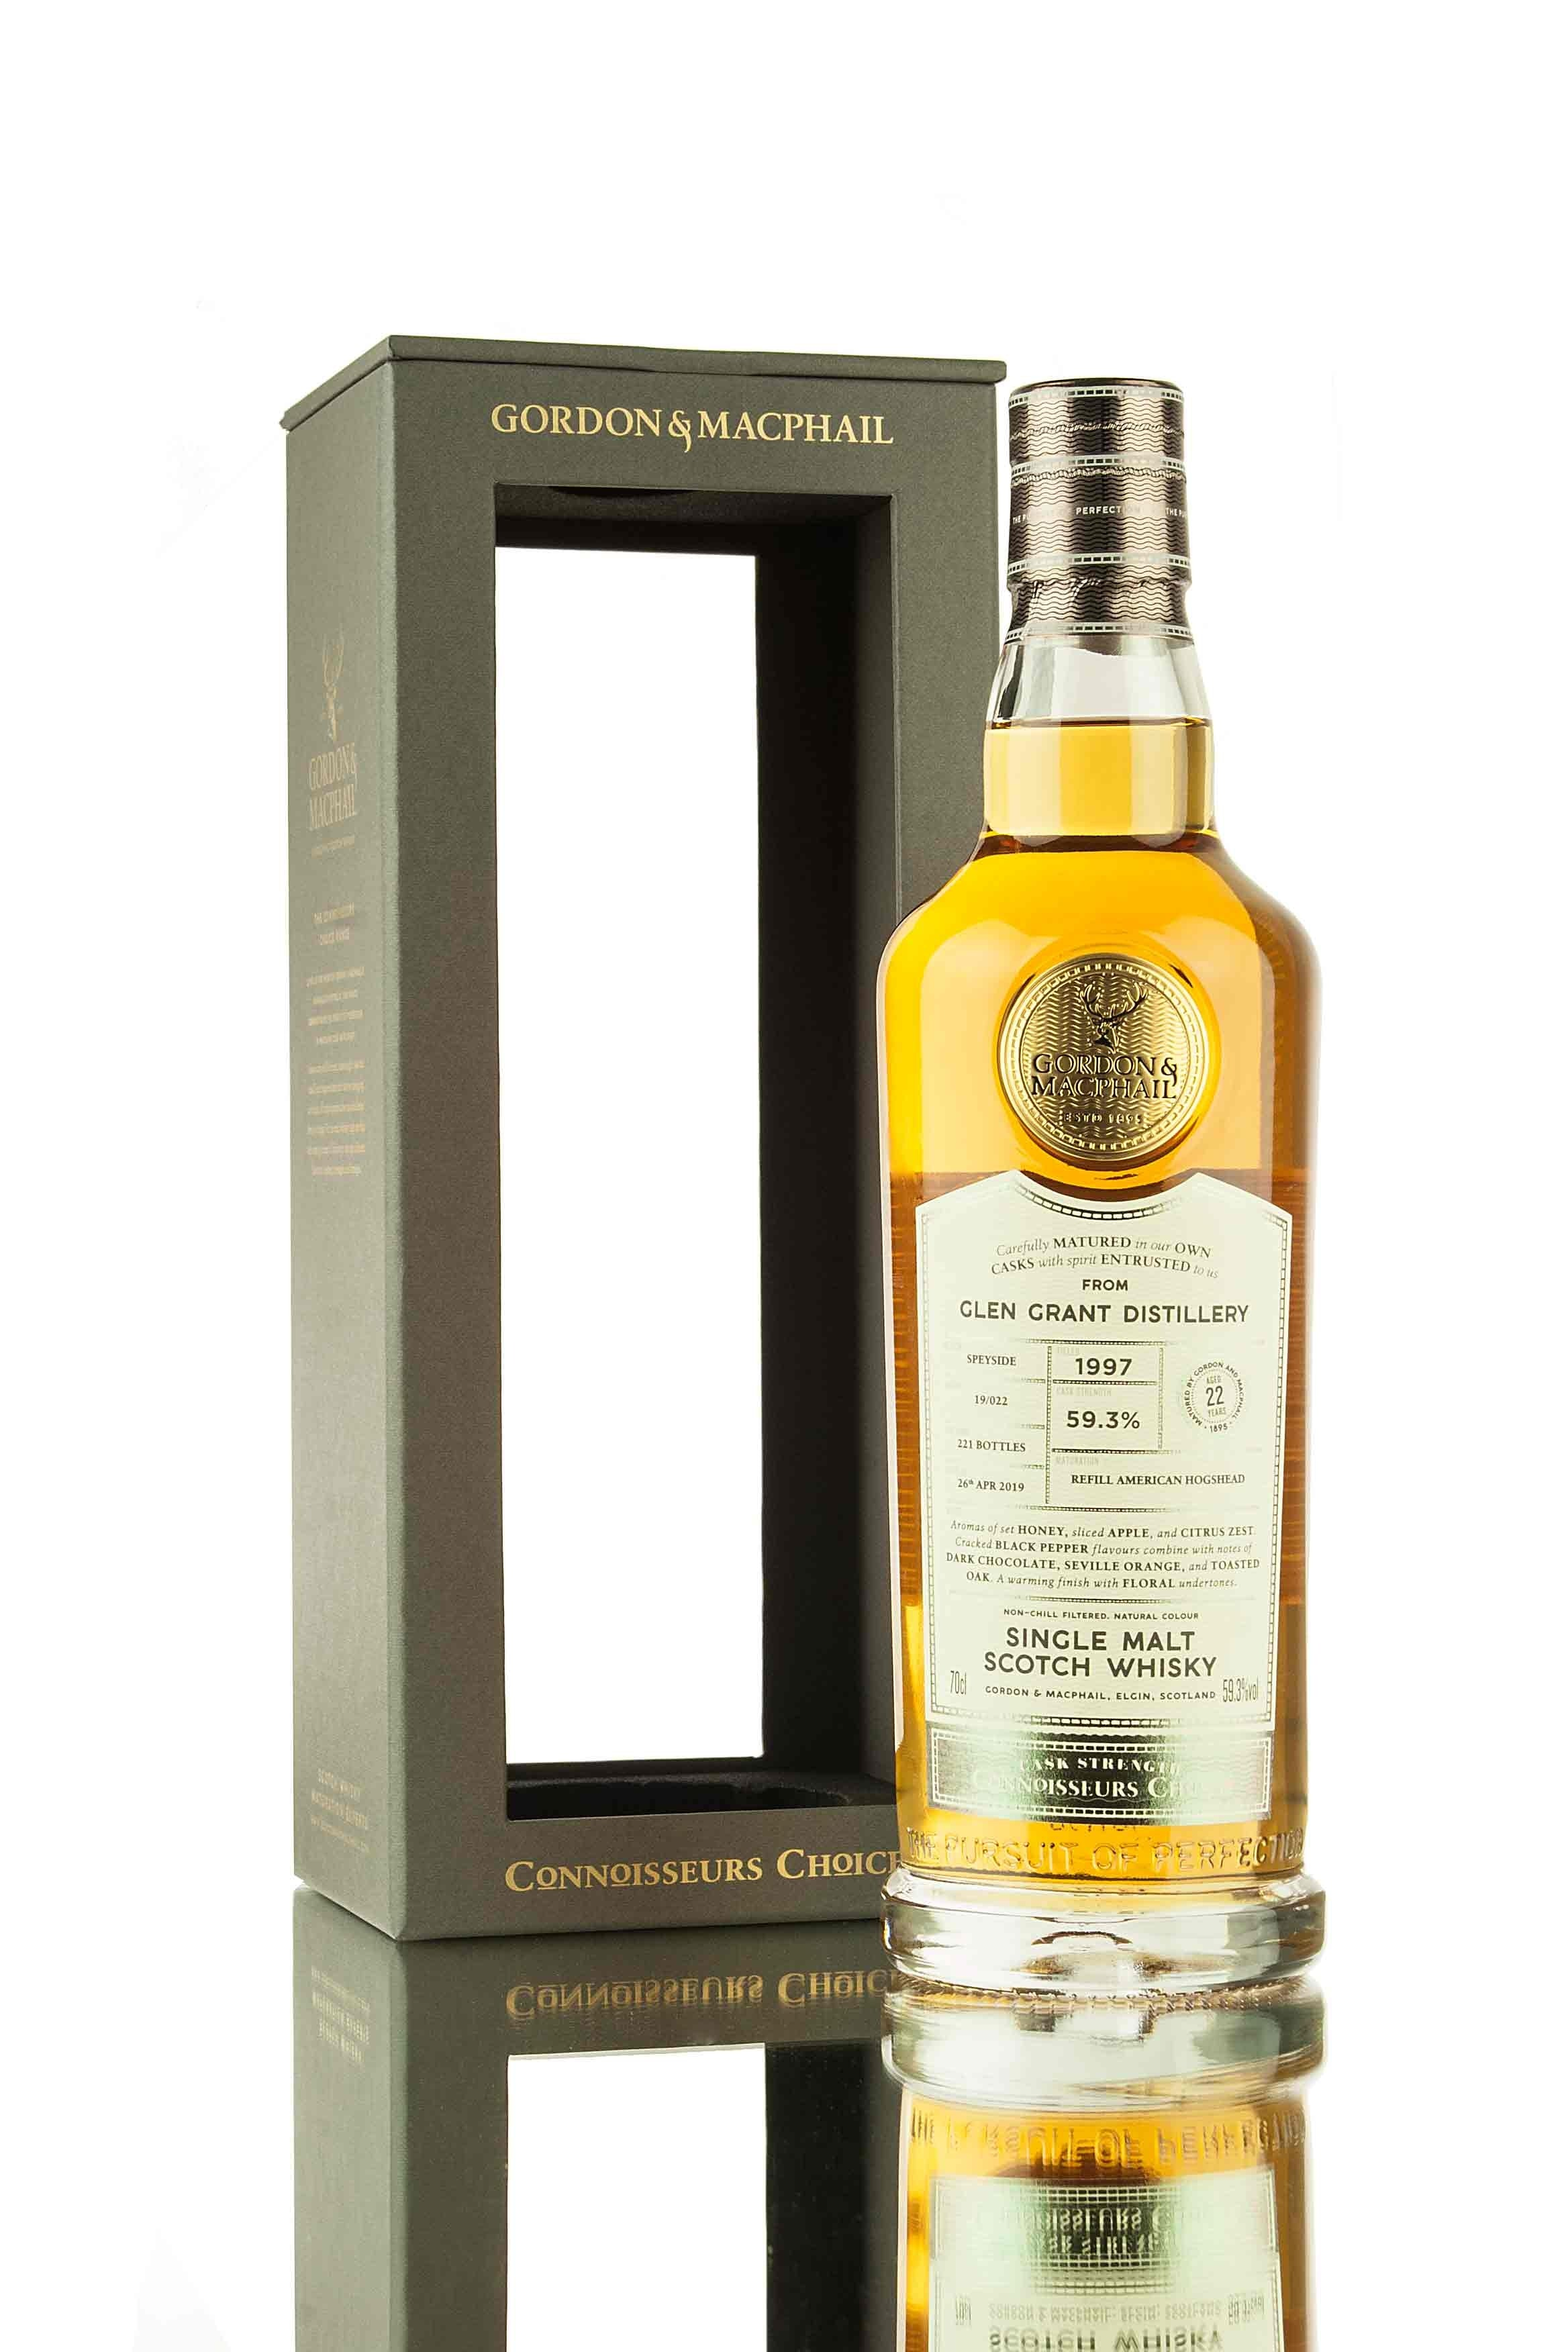 Glen Grant 22 Year Old - 1997 | Connoisseurs Choice (G&M)